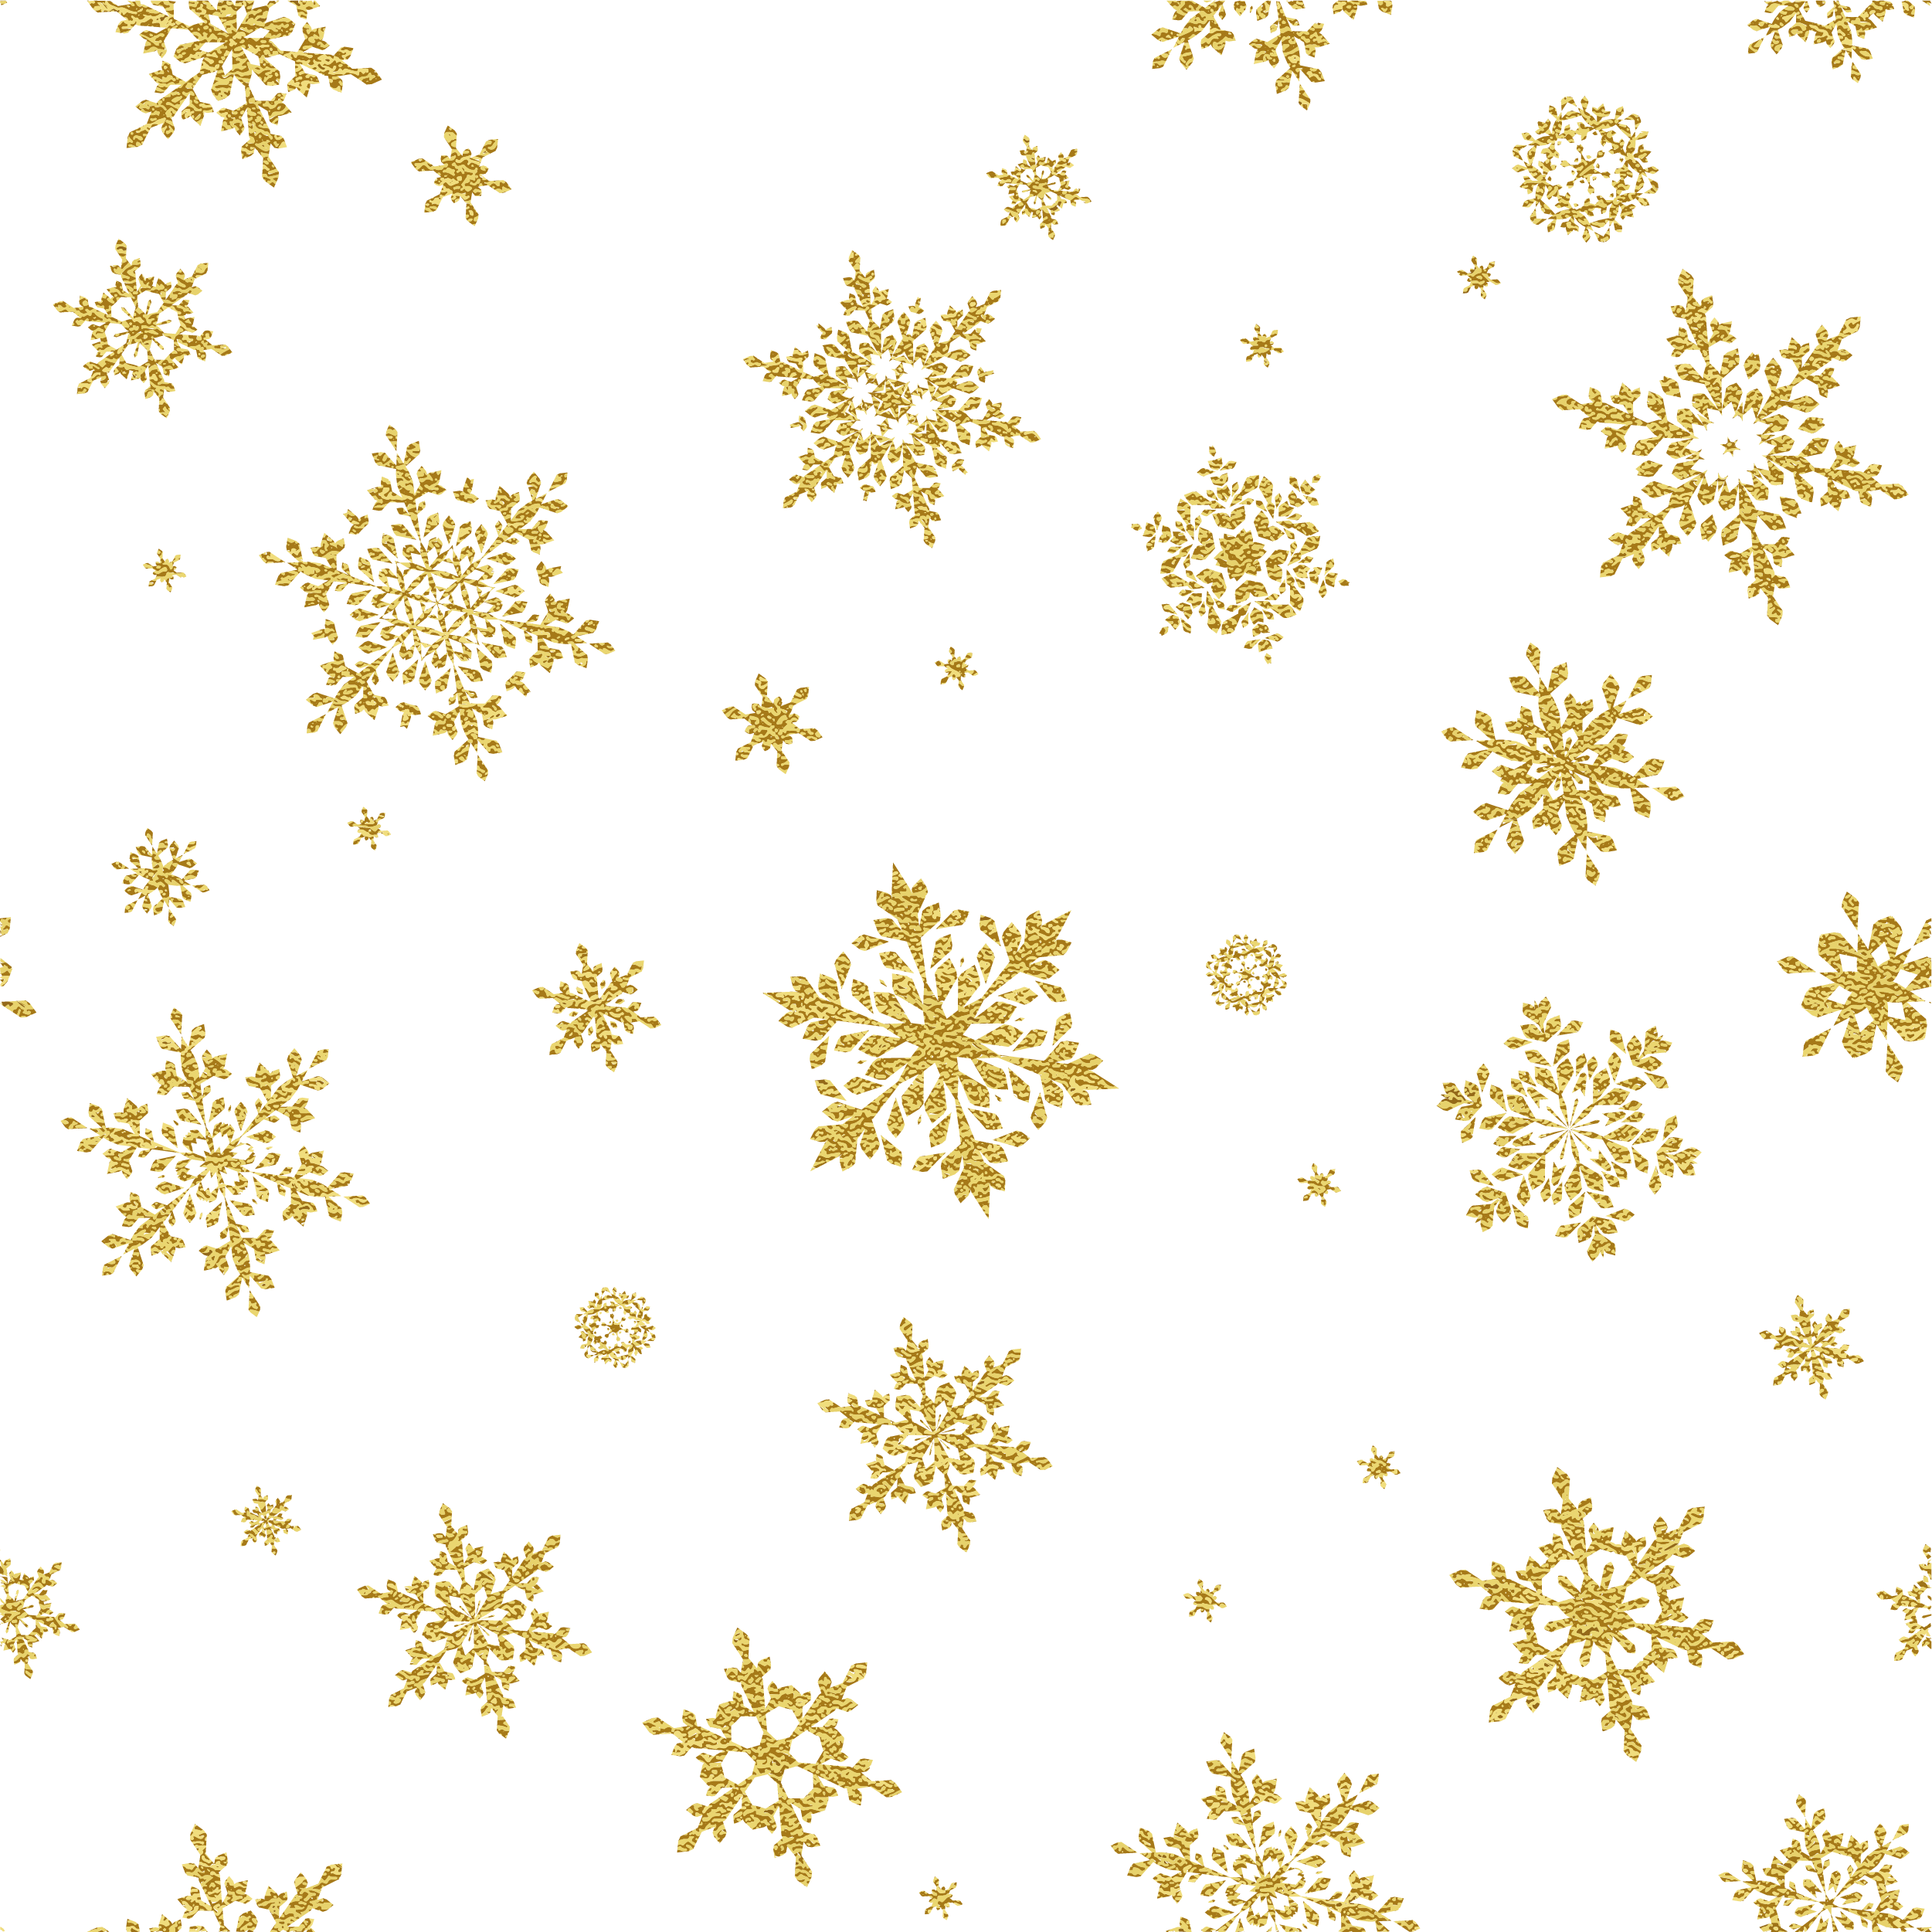 snowflakes for free. Snowflake border png